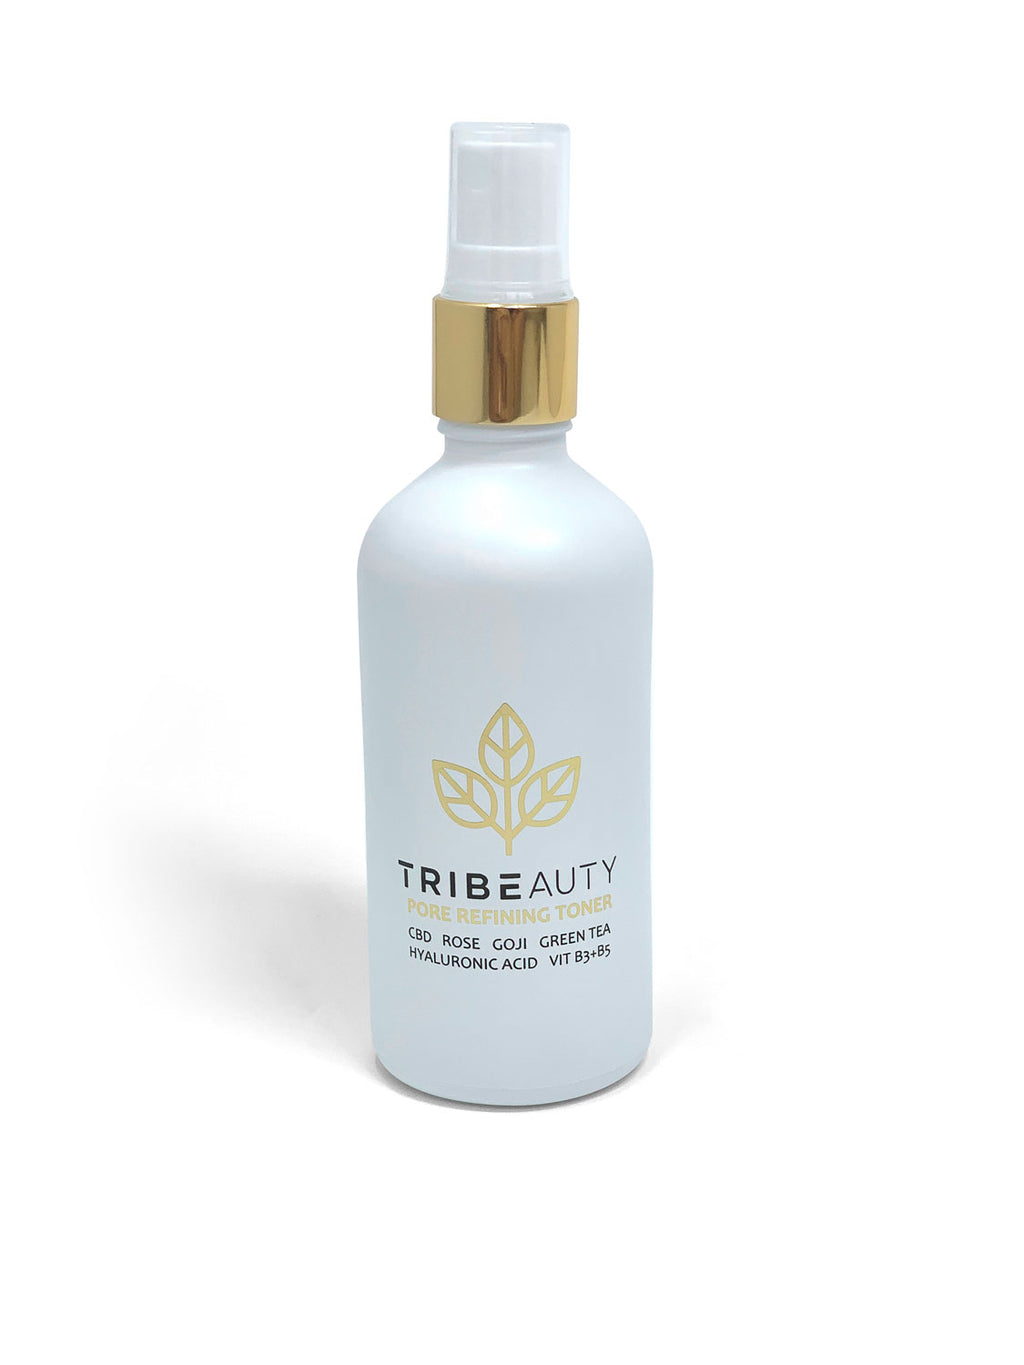 Tribeauty CBD Rose & Goji Facial Toner